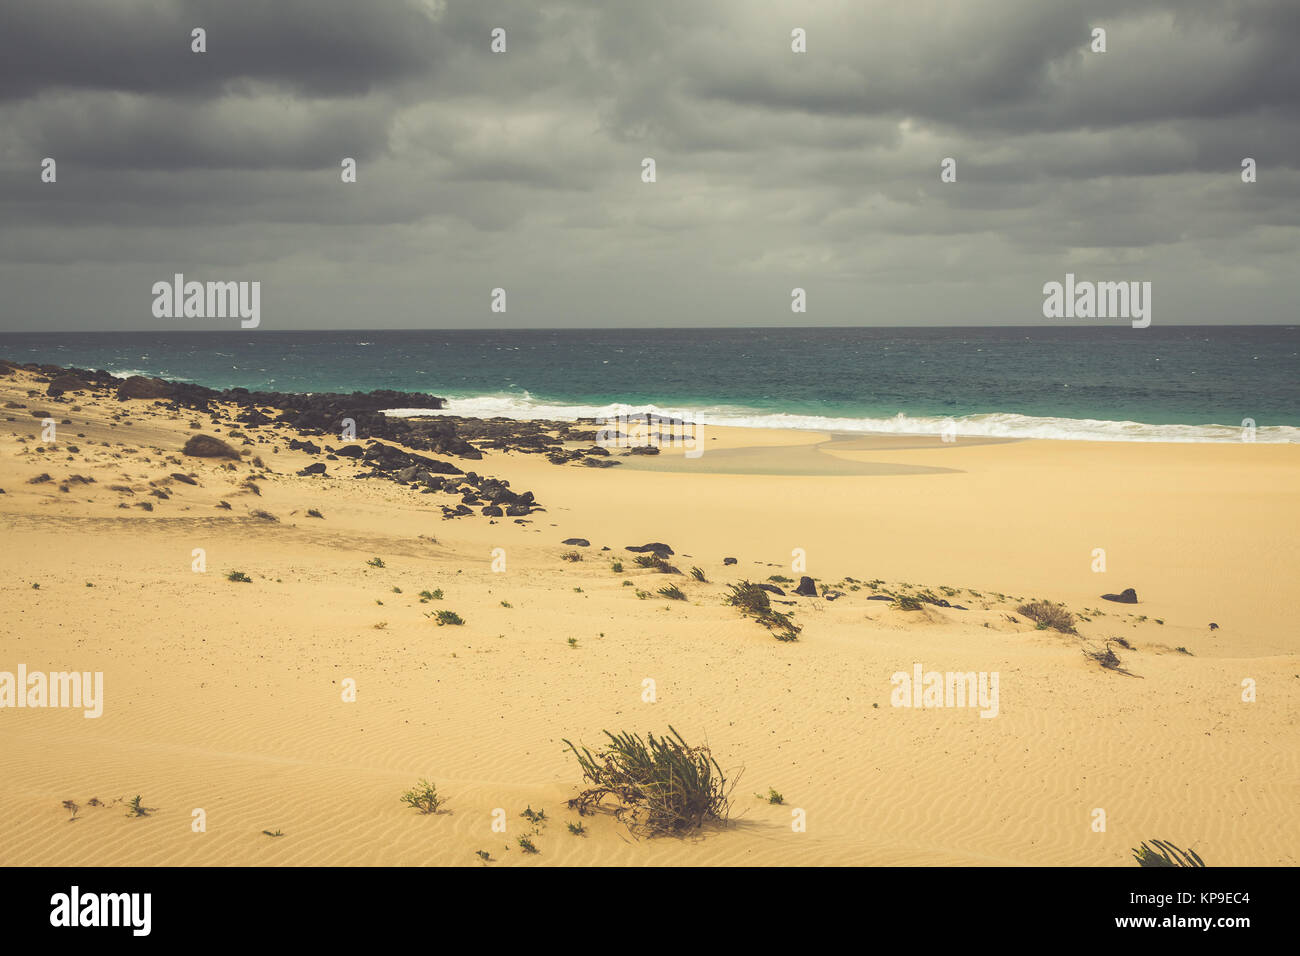 A view of Playa de Las Conchas, a beautiful beach on La Graciosa, a small island near Lanzarote, Canary Islands, - Stock Image